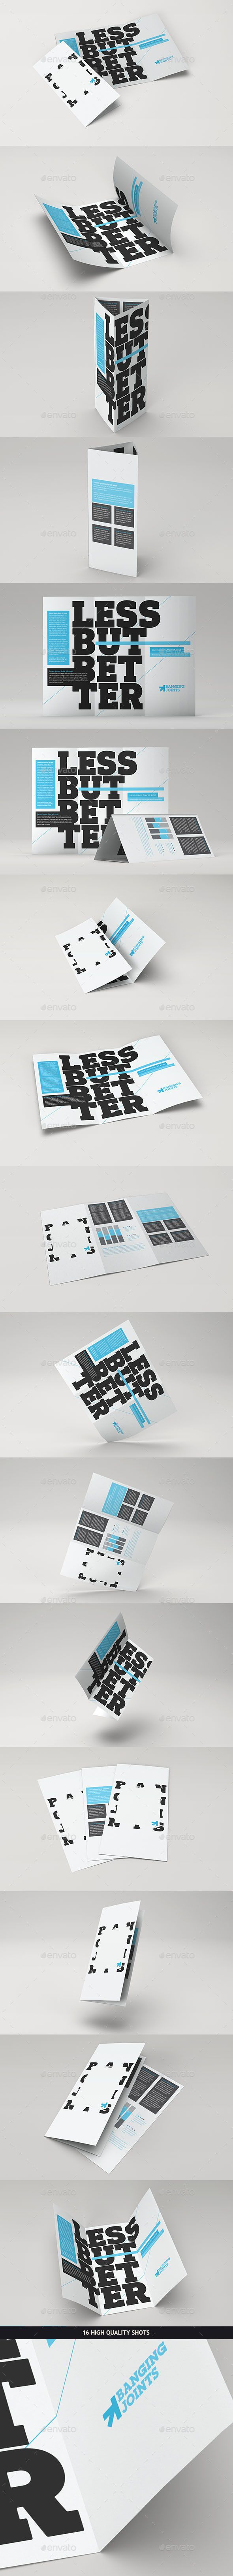 Trifold Brochure Mock-Up Pack | psd keys | Brochure design